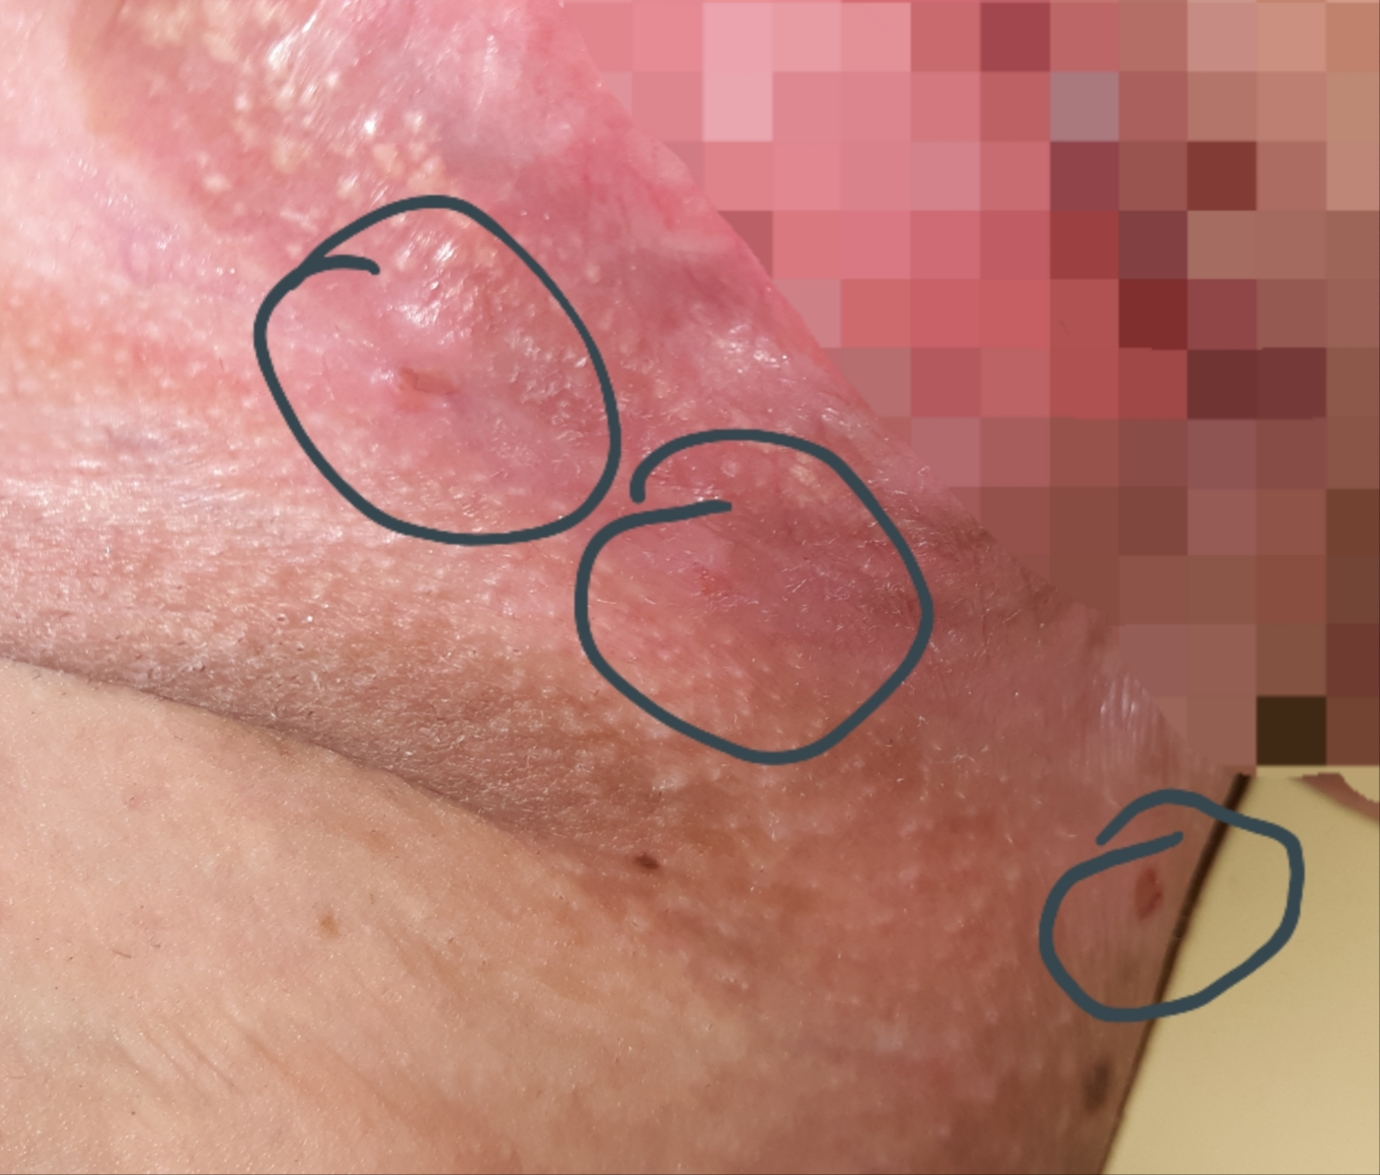 Friction Sores From Intercourse